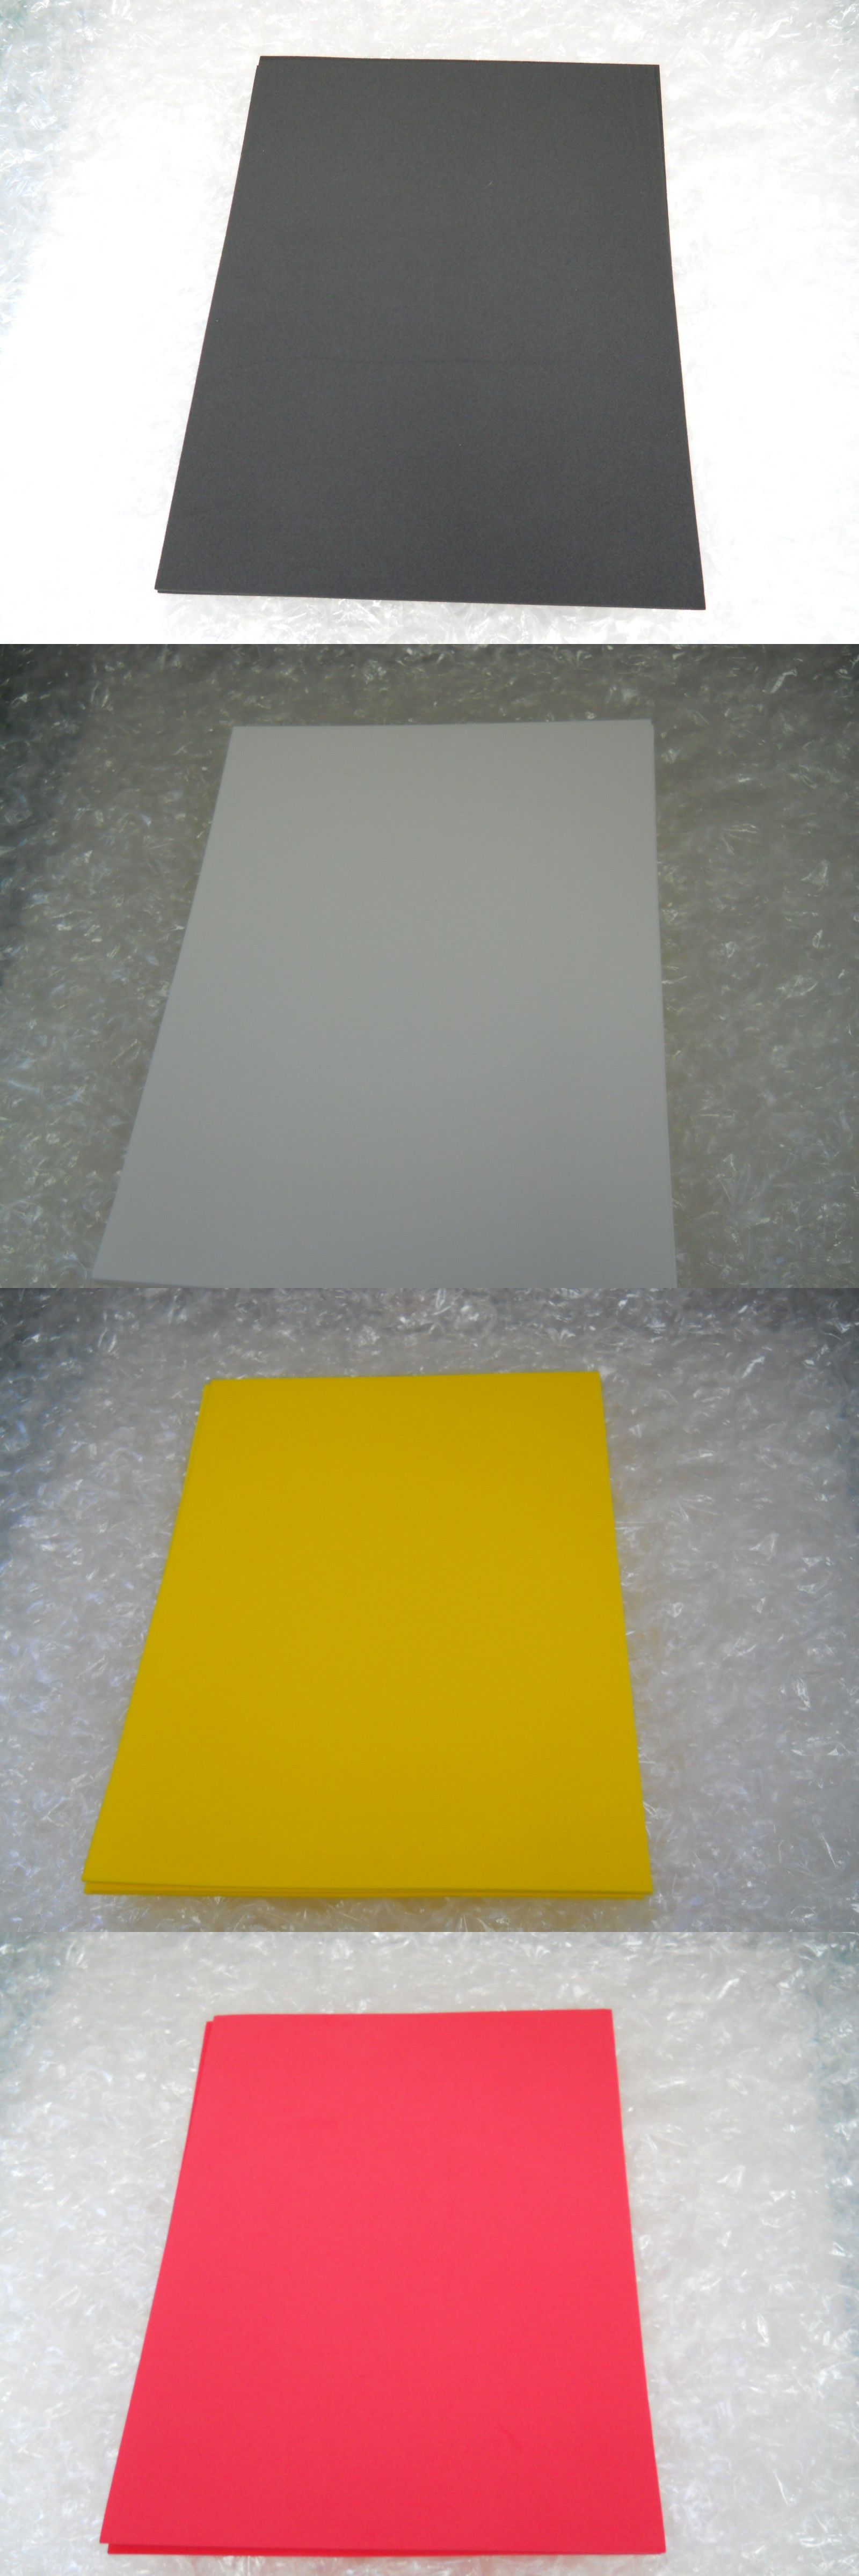 Styrofoam Forms 41200 3mm 1 8 6 Pcs Eva Craft Foam Sheets 12 X 18 More Than 15 Colors Buy It Now Only 10